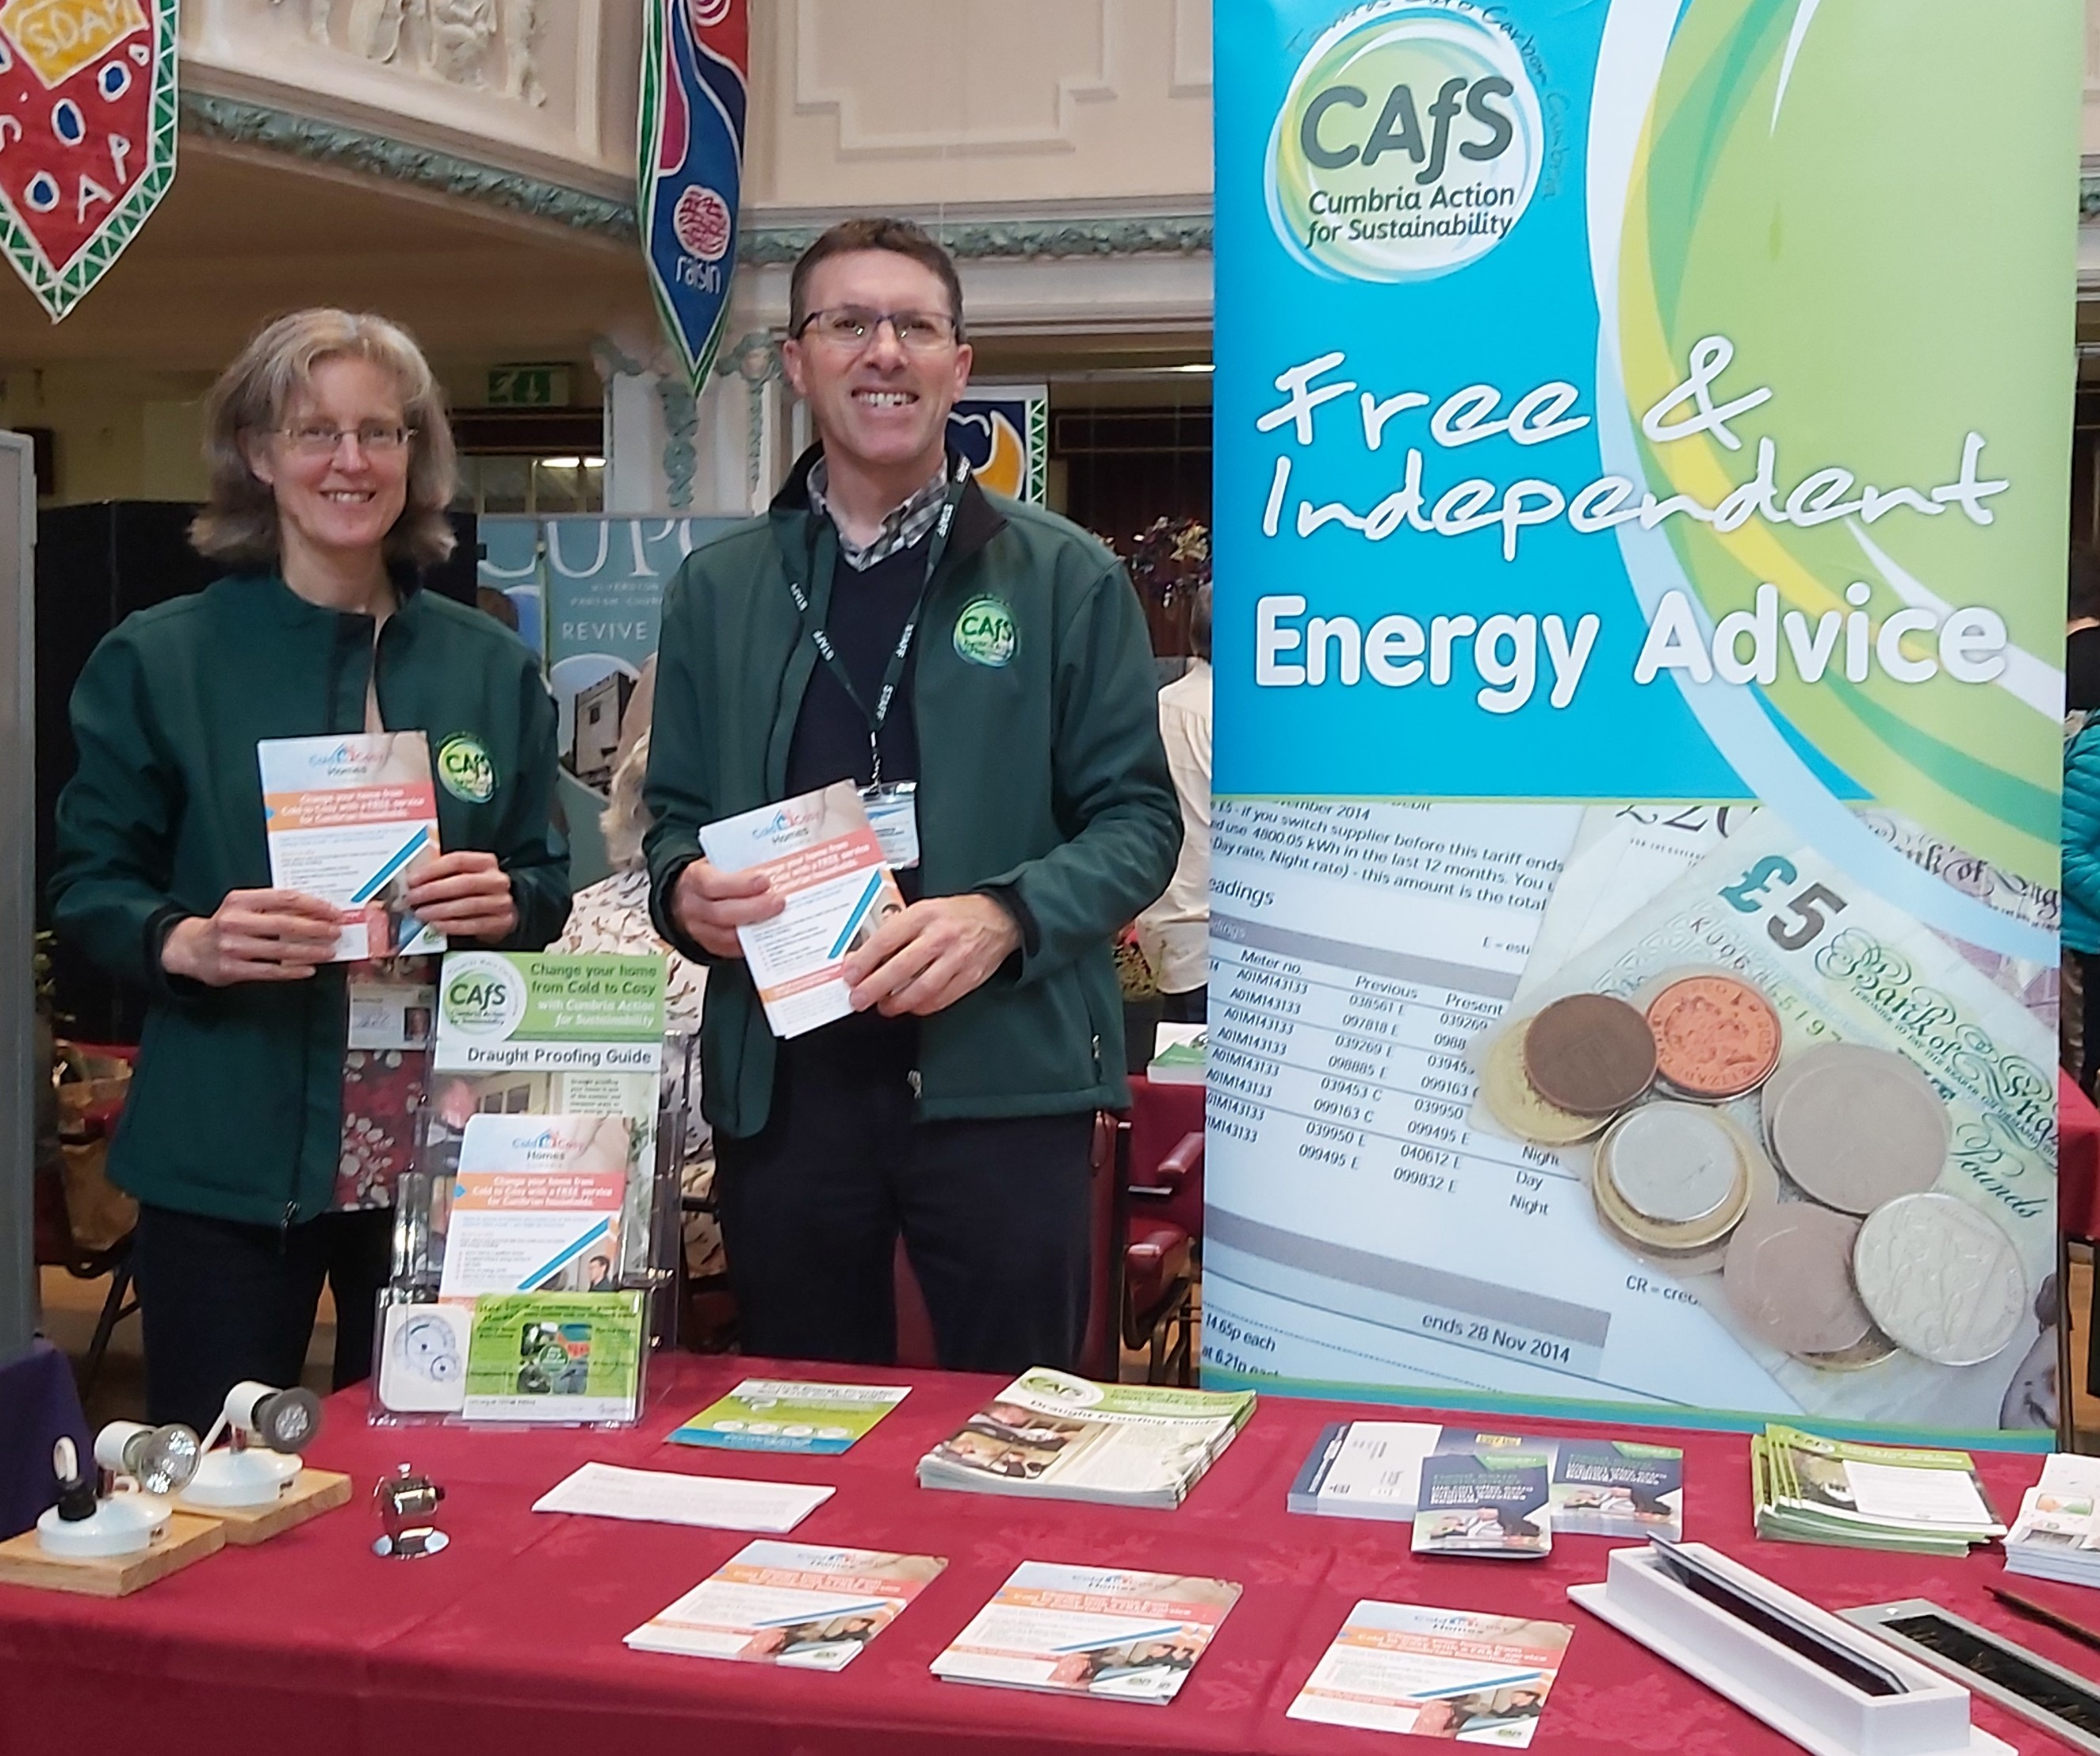 Tina & Andrew from CAfS at Ulverston Eco Fair